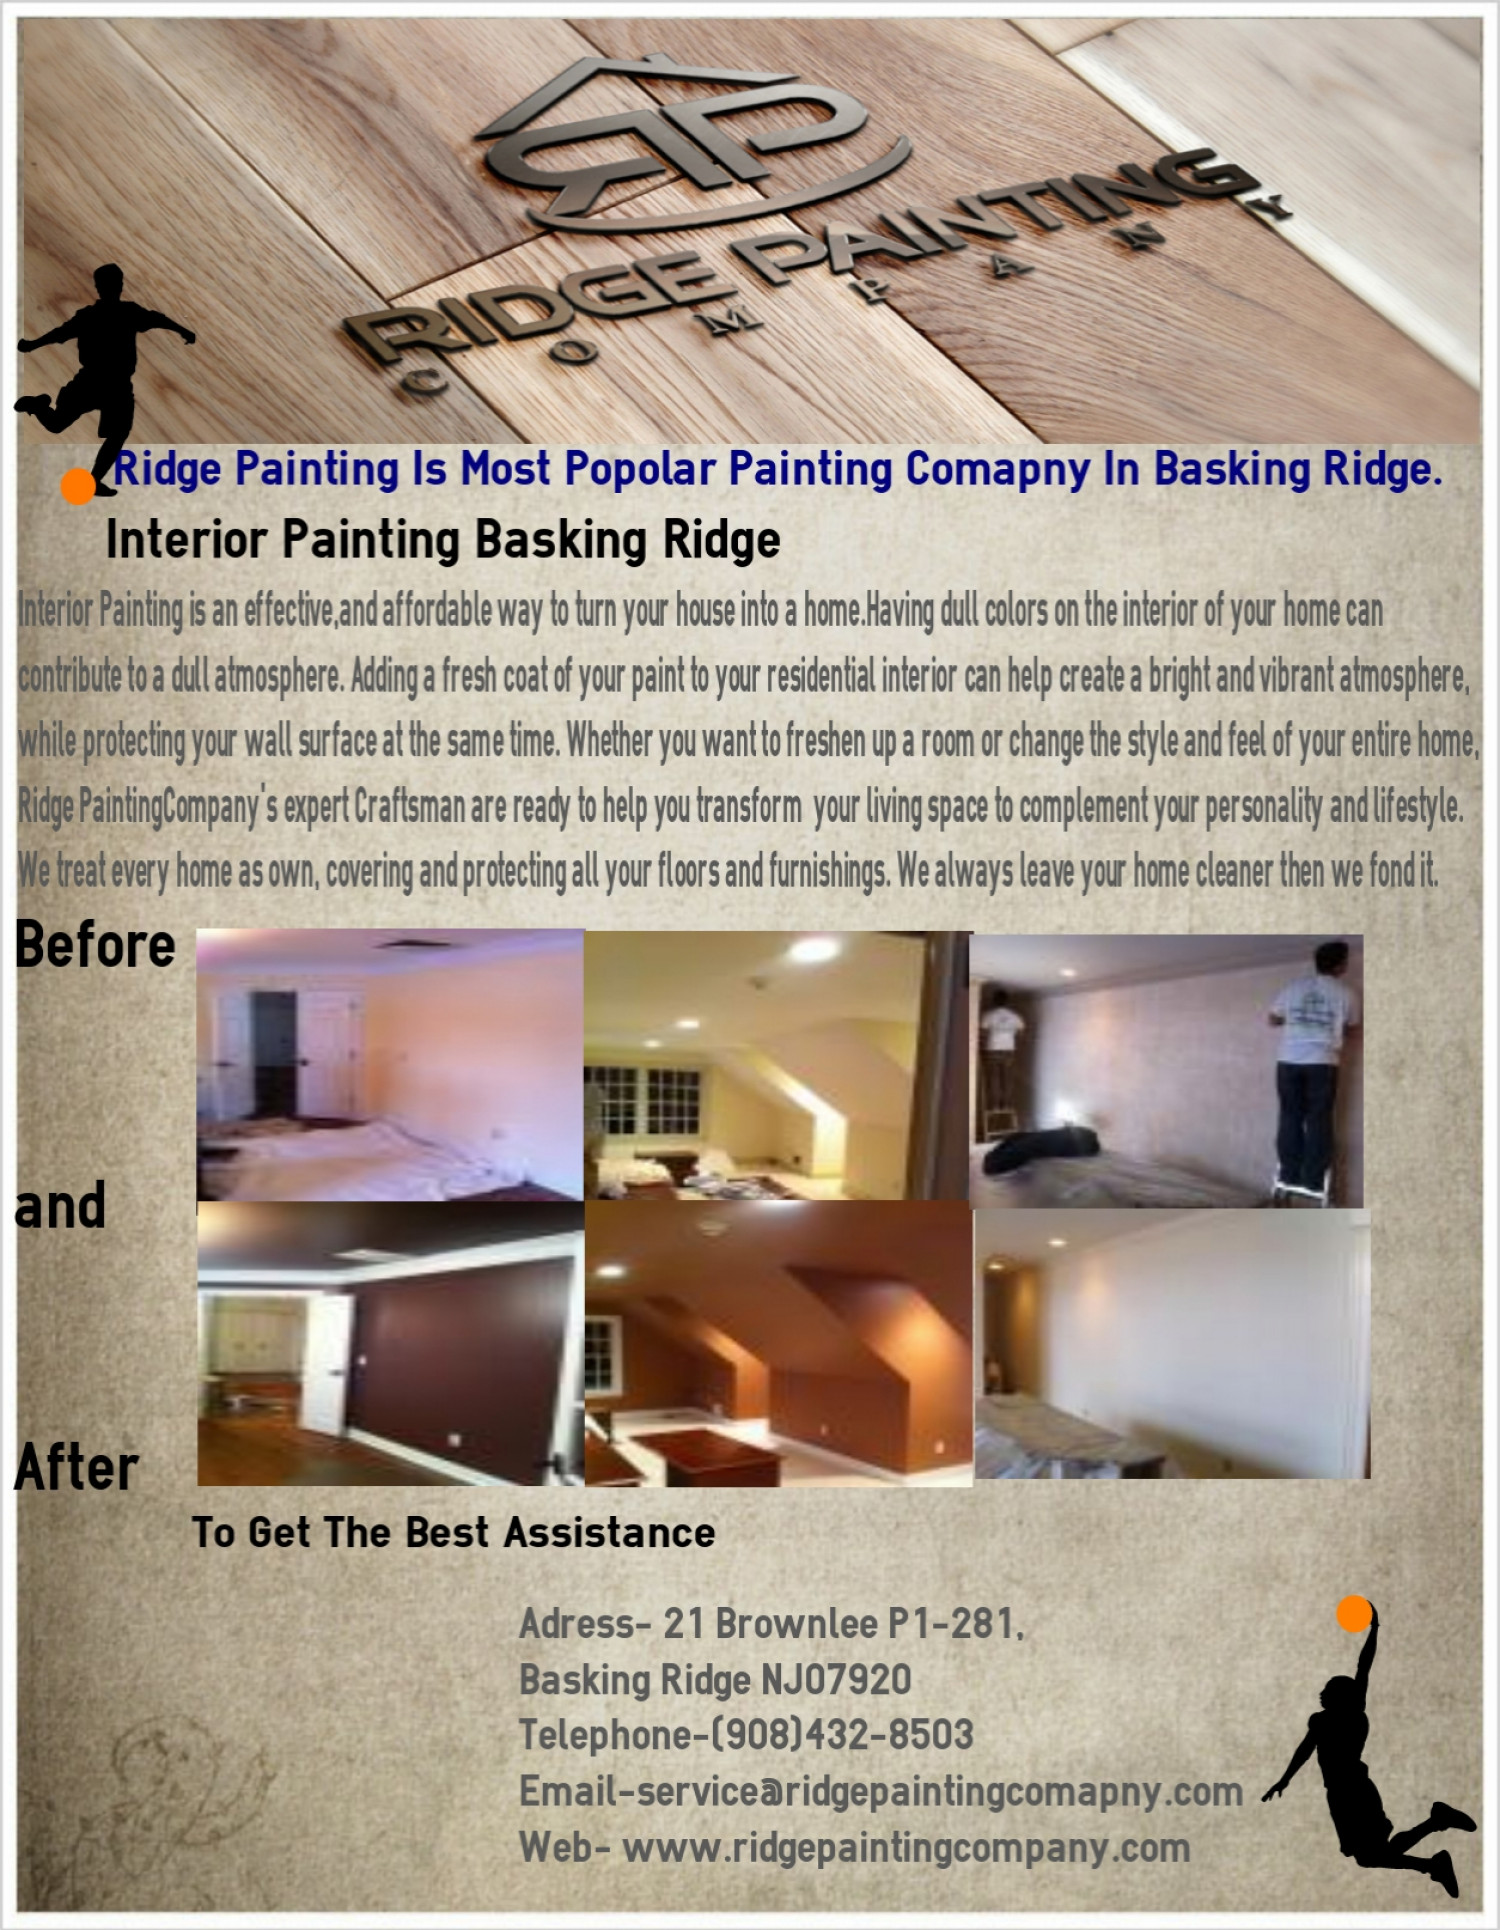 Painting Company in Basking Ridge Infographic